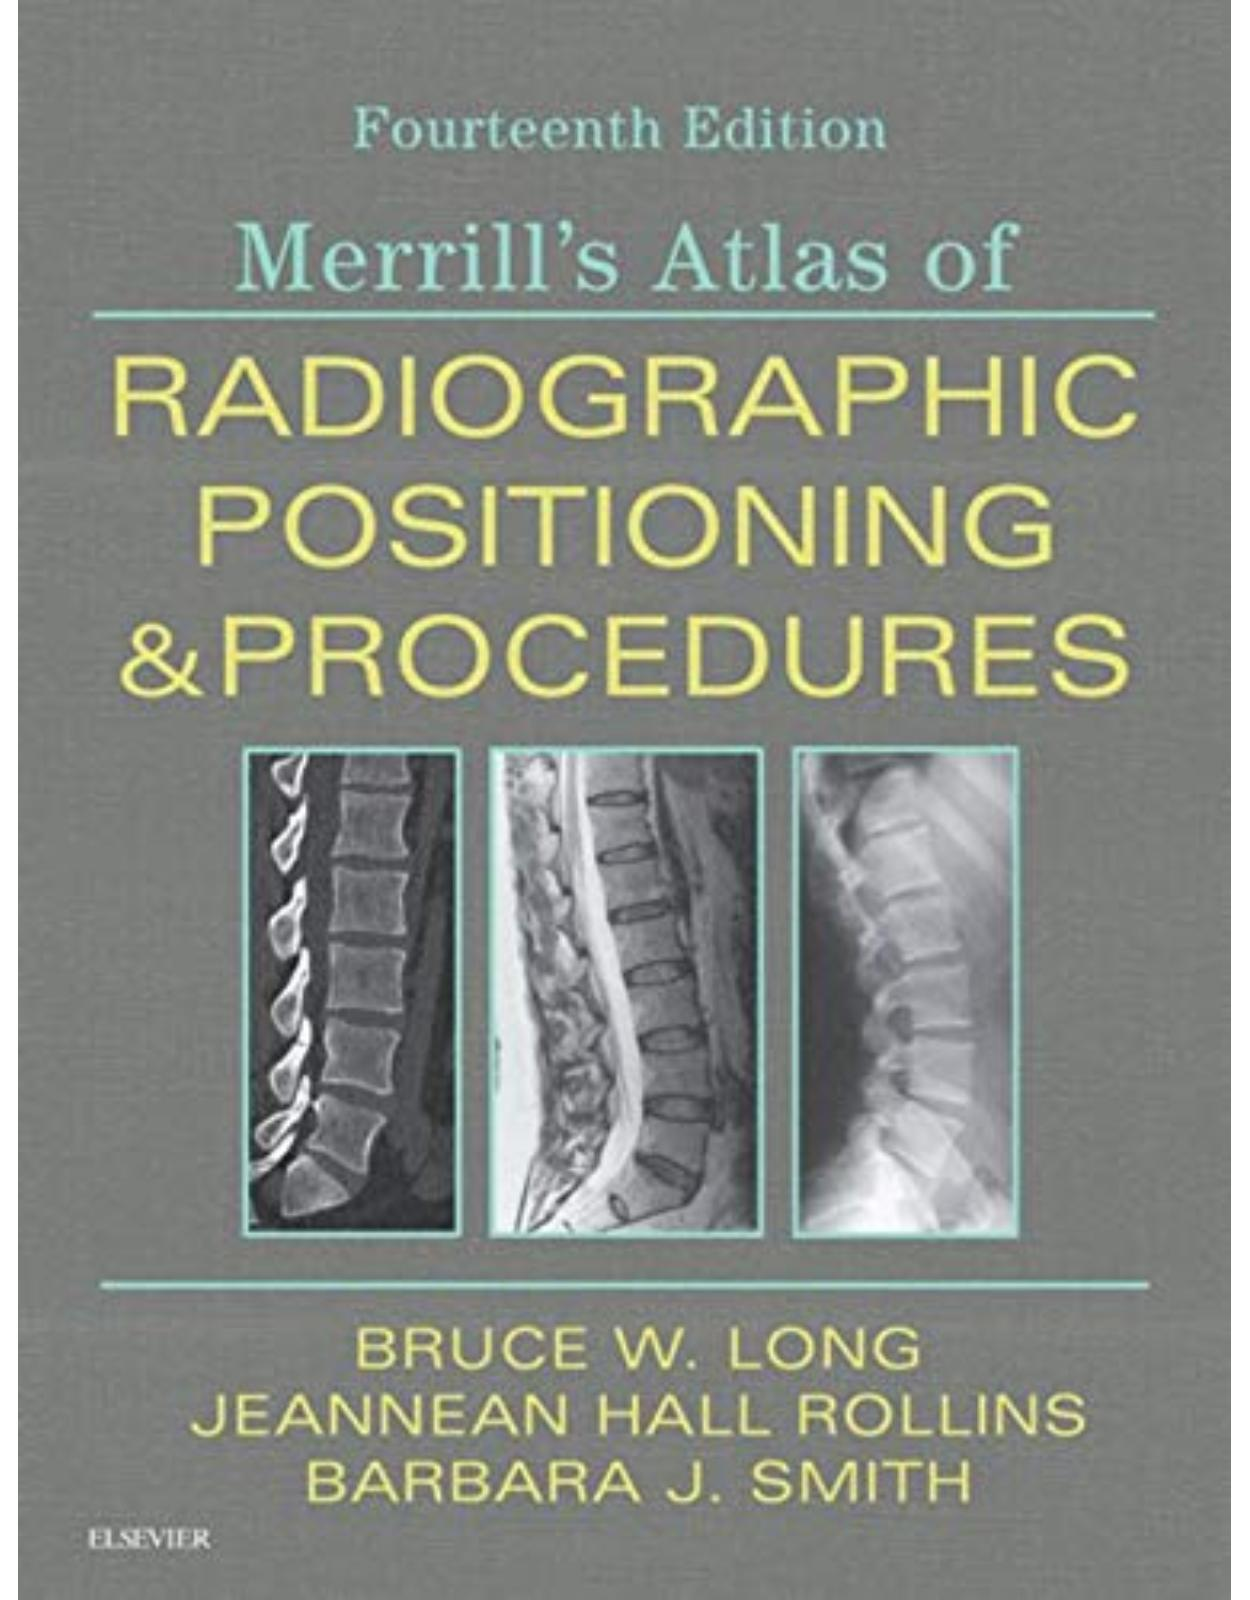 Merrill's Atlas of Radiographic Positioning and Procedures: 3-Volume Set, 14e